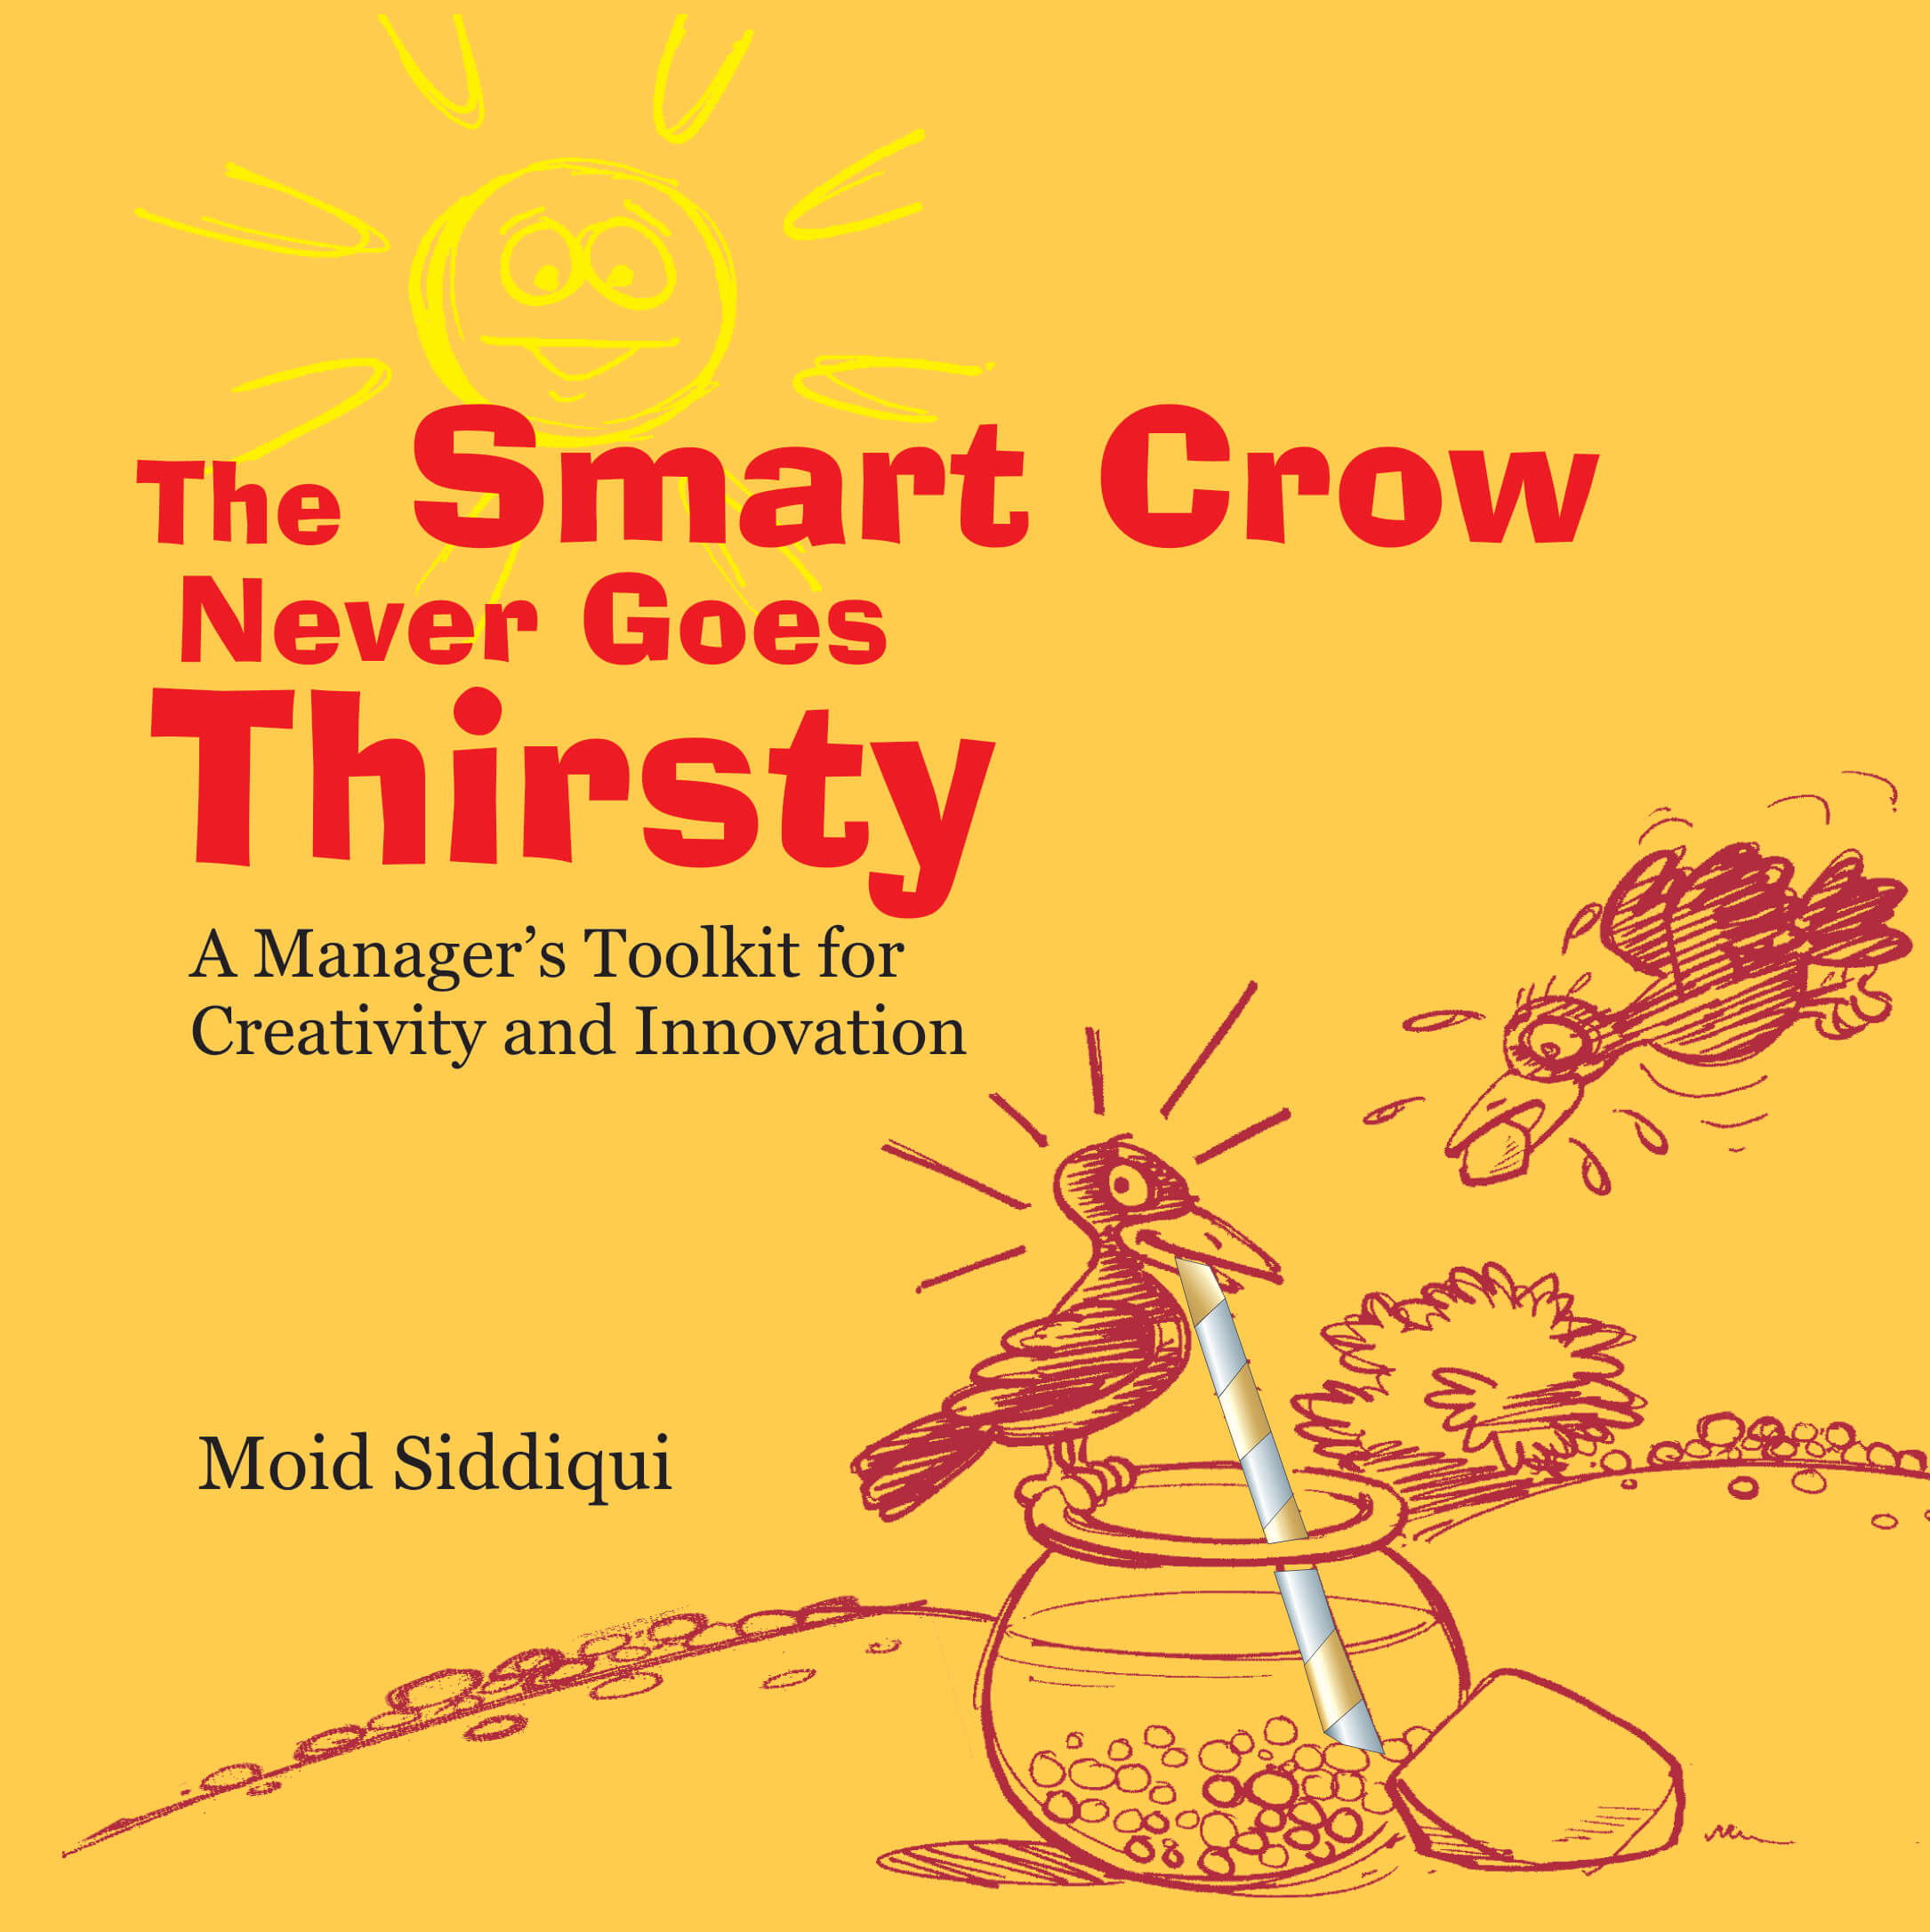 The Smart Crow Never Goes Thirsty: A Manager's Toolkit For Creativity And Innovation